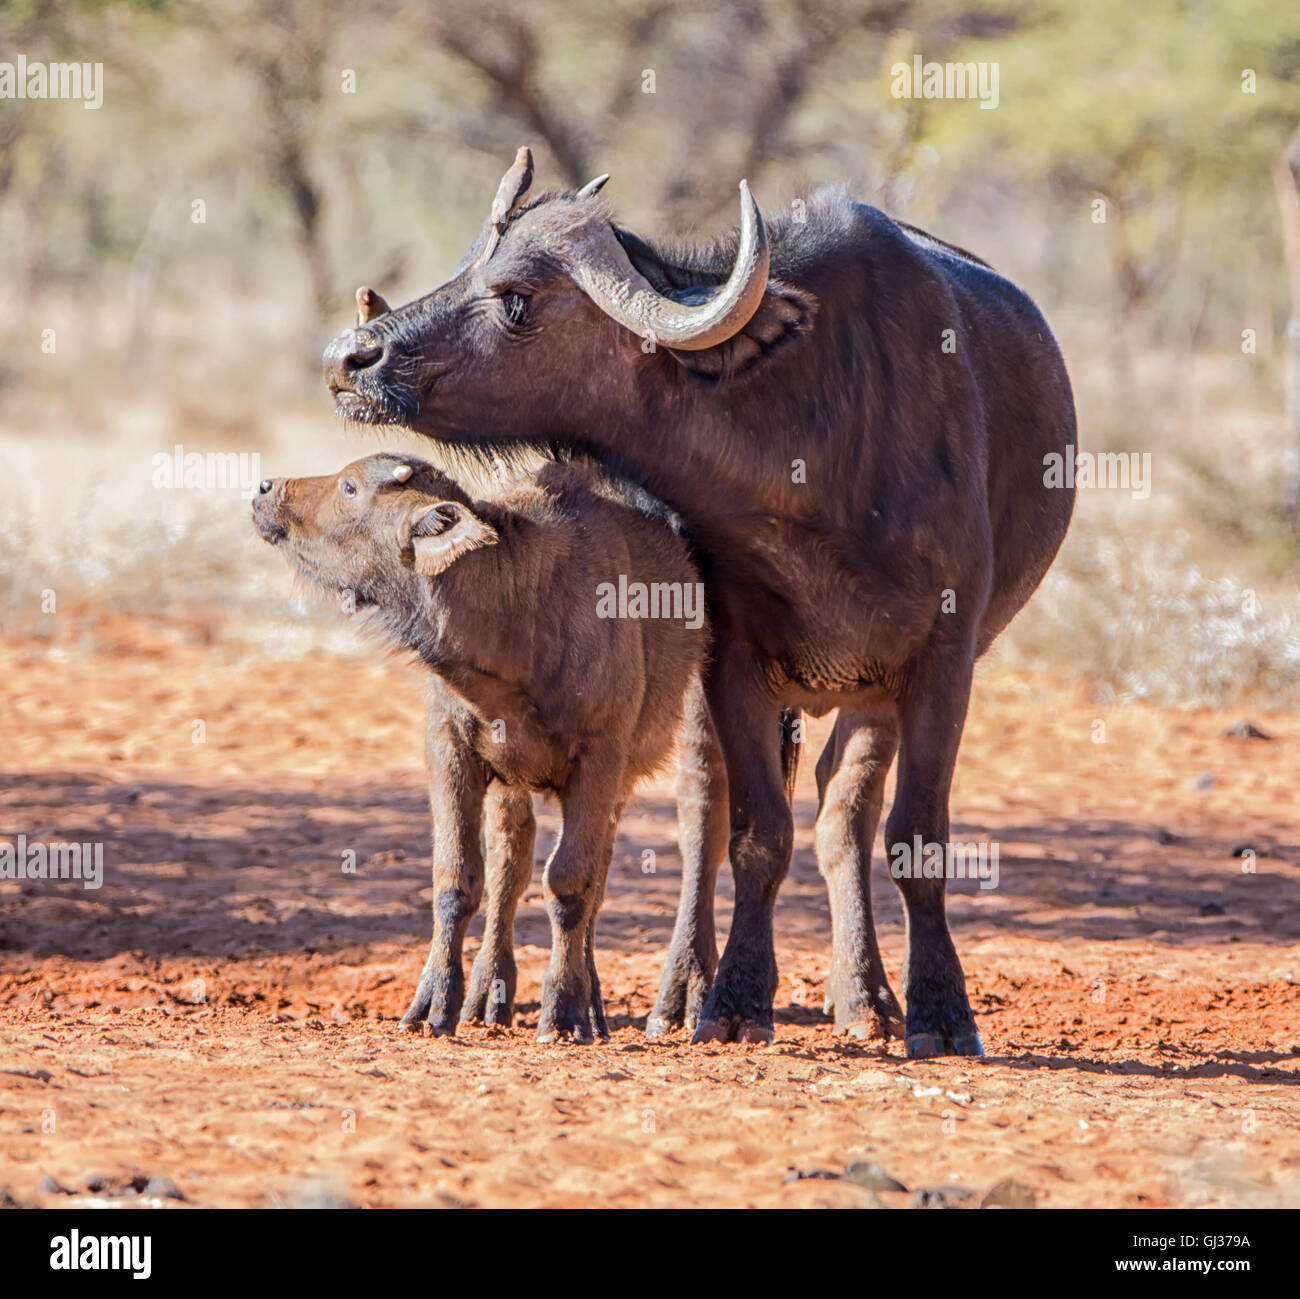 An African Buffalo mother and calf standing in savanna while the mother gets a grooming from Oxpecker birds - Stock Image